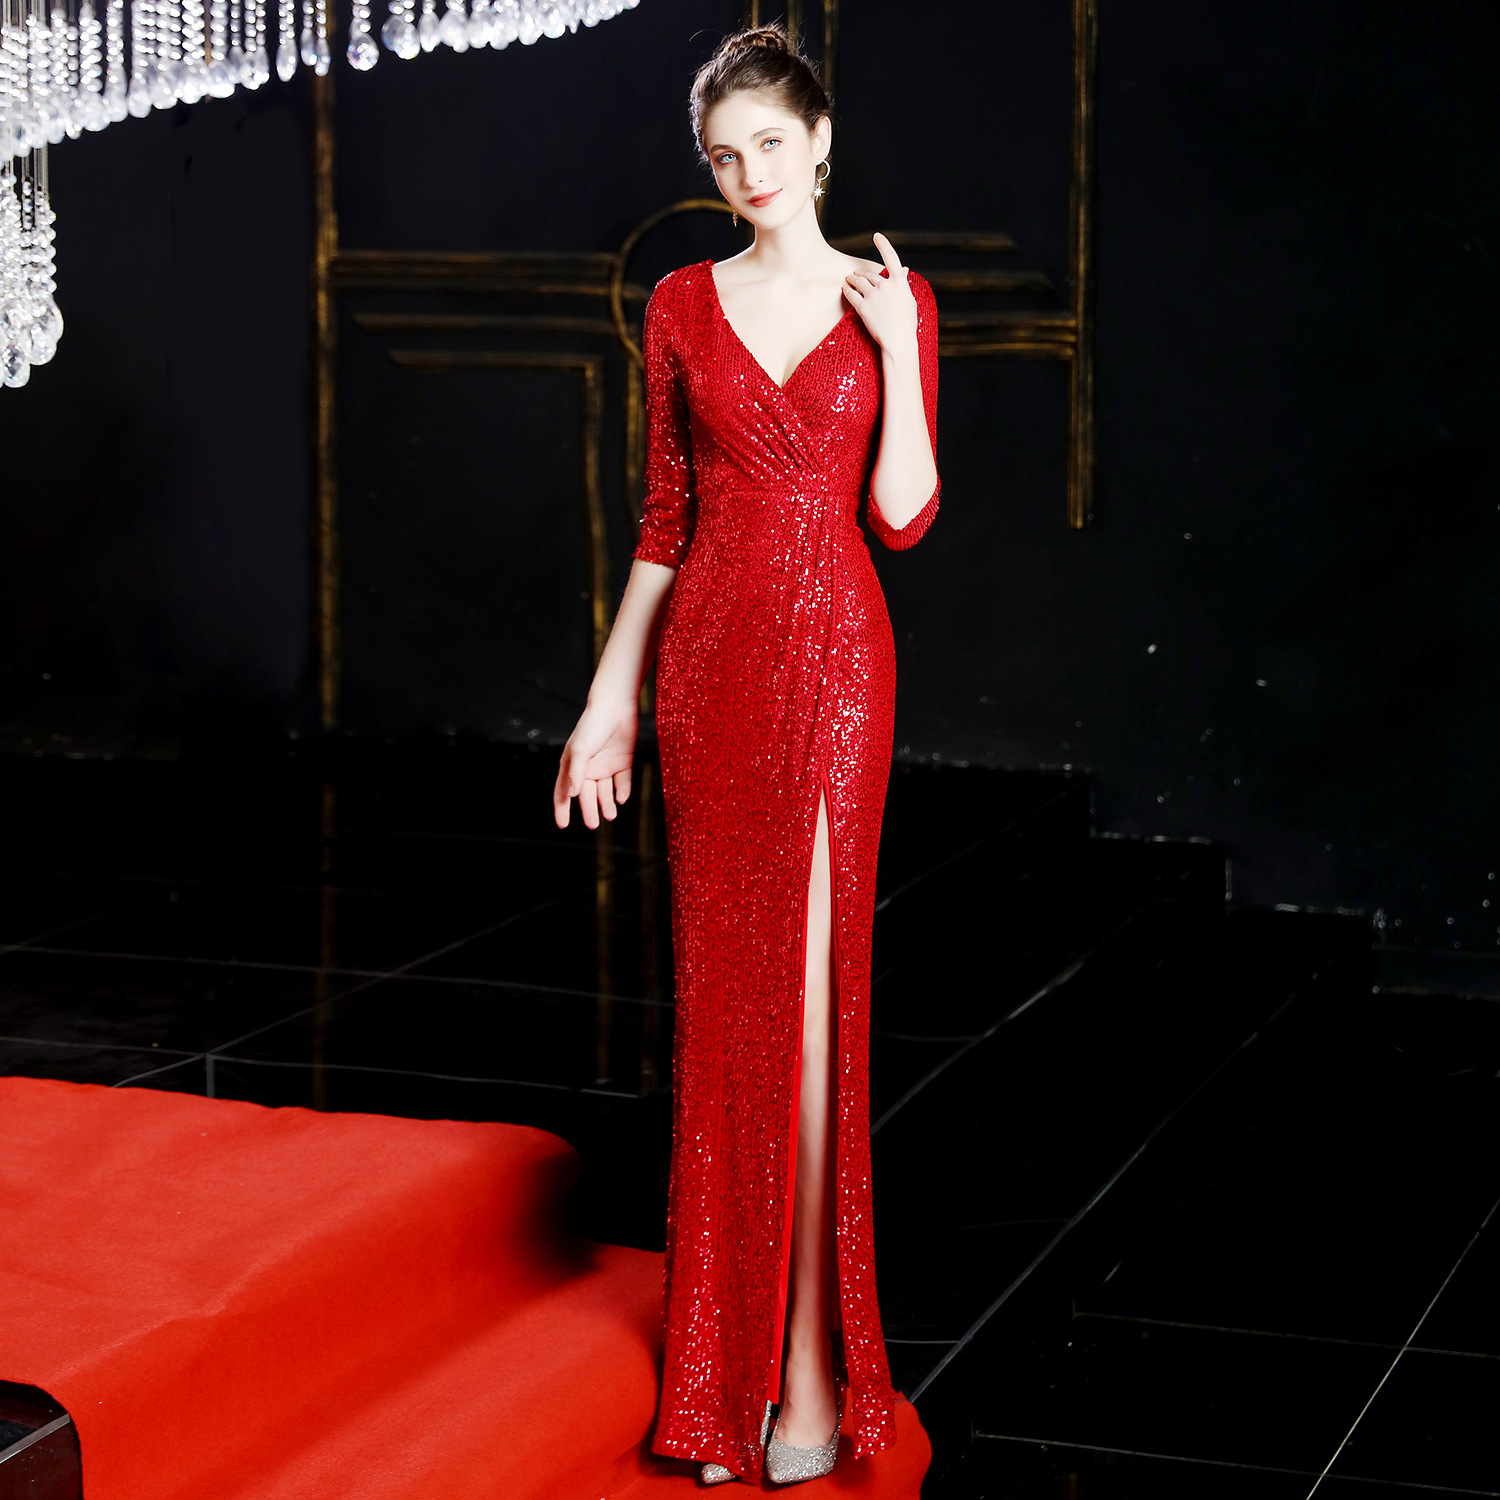 Image 3 - New Long Dresses Evening Formal Dresses Evening Gown Evening 